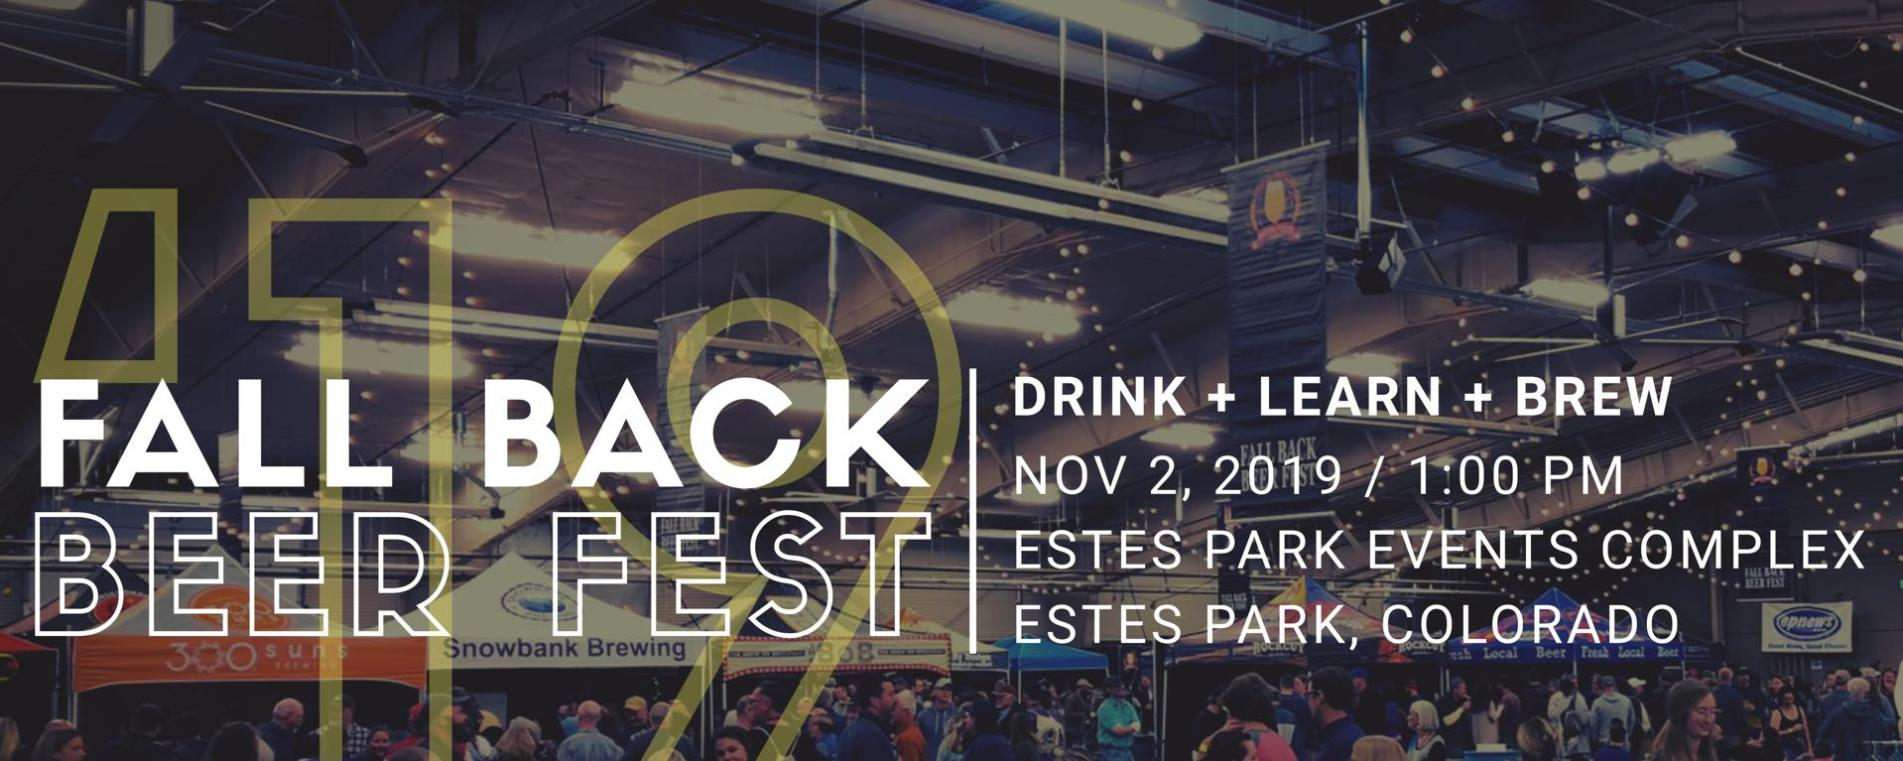 Fall Back Beer Fest 2019 Cover